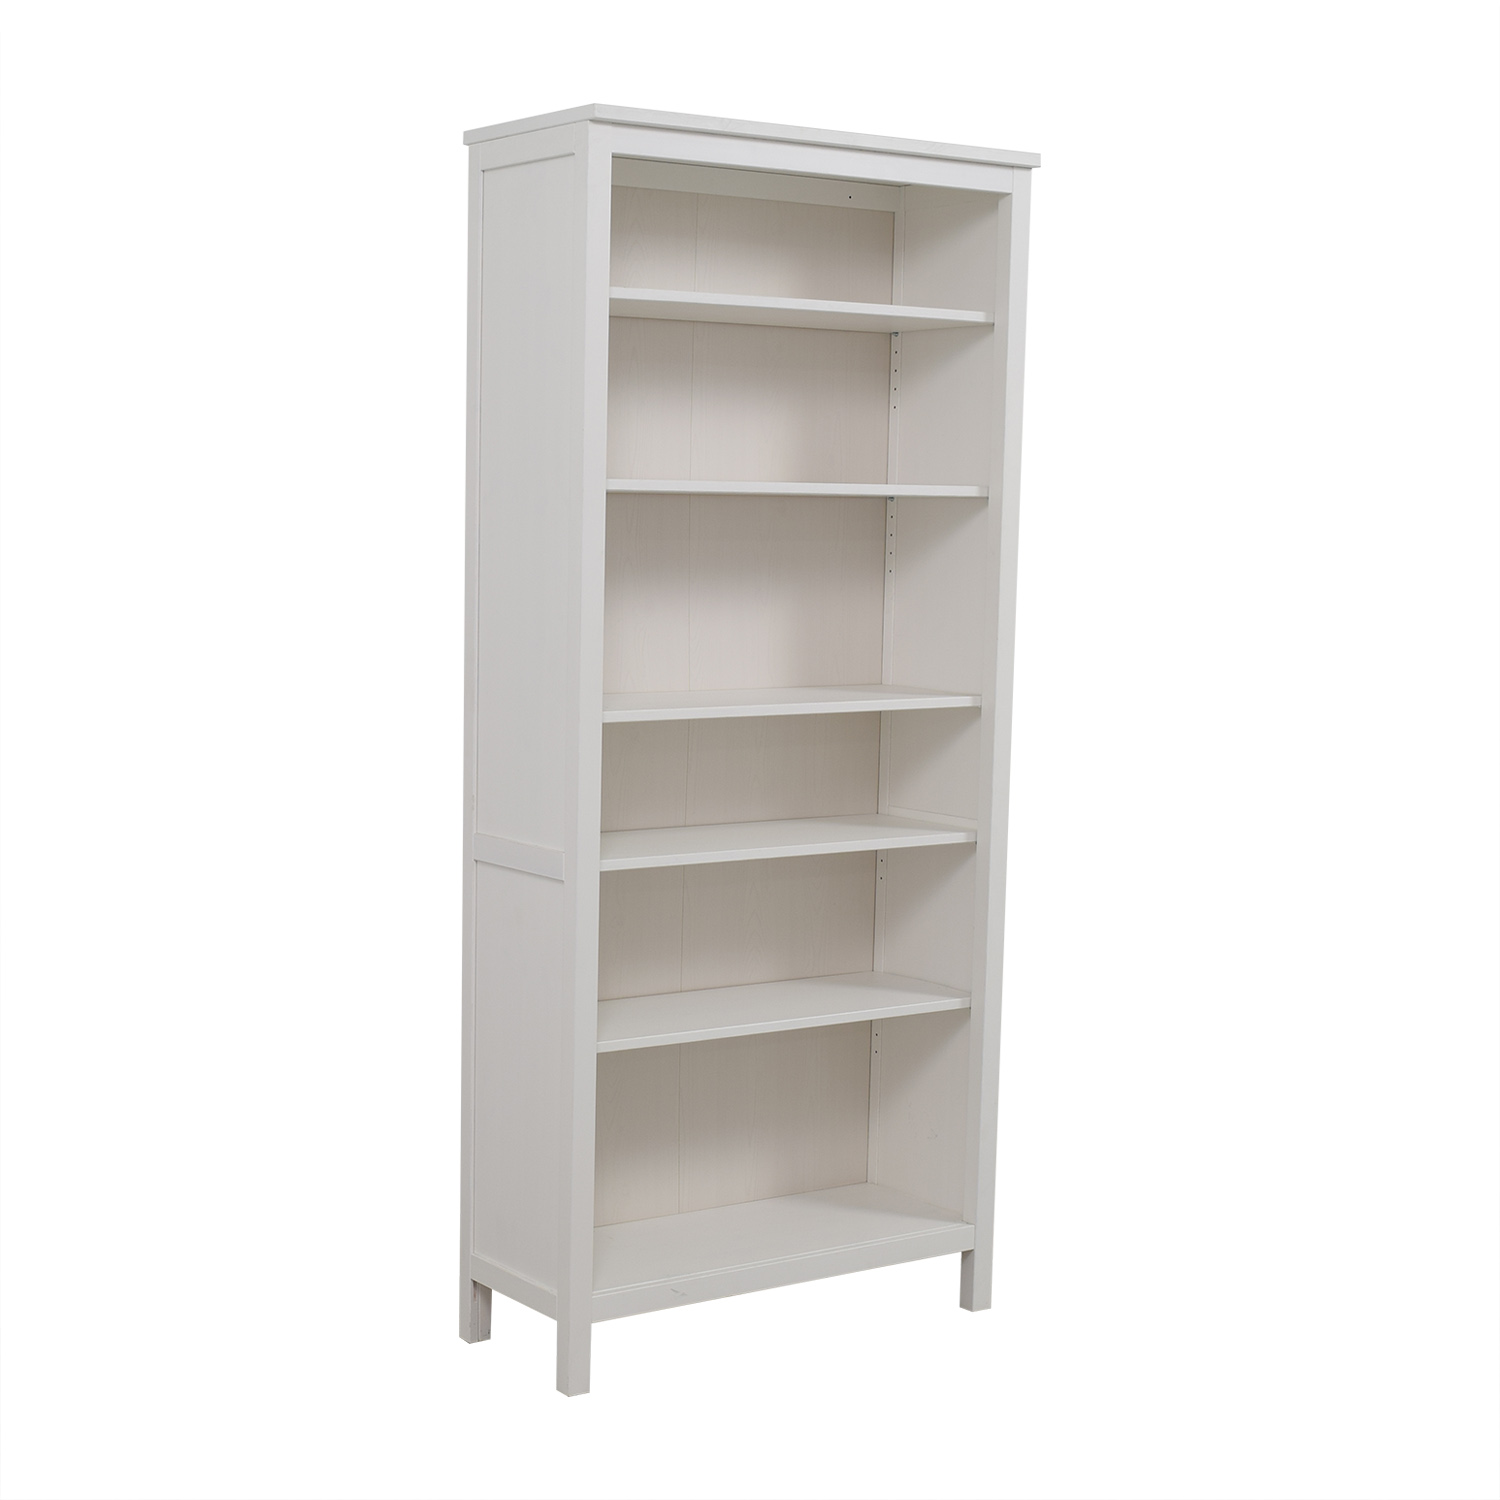 34 off ikea ikea white hemnes bookshelf storage